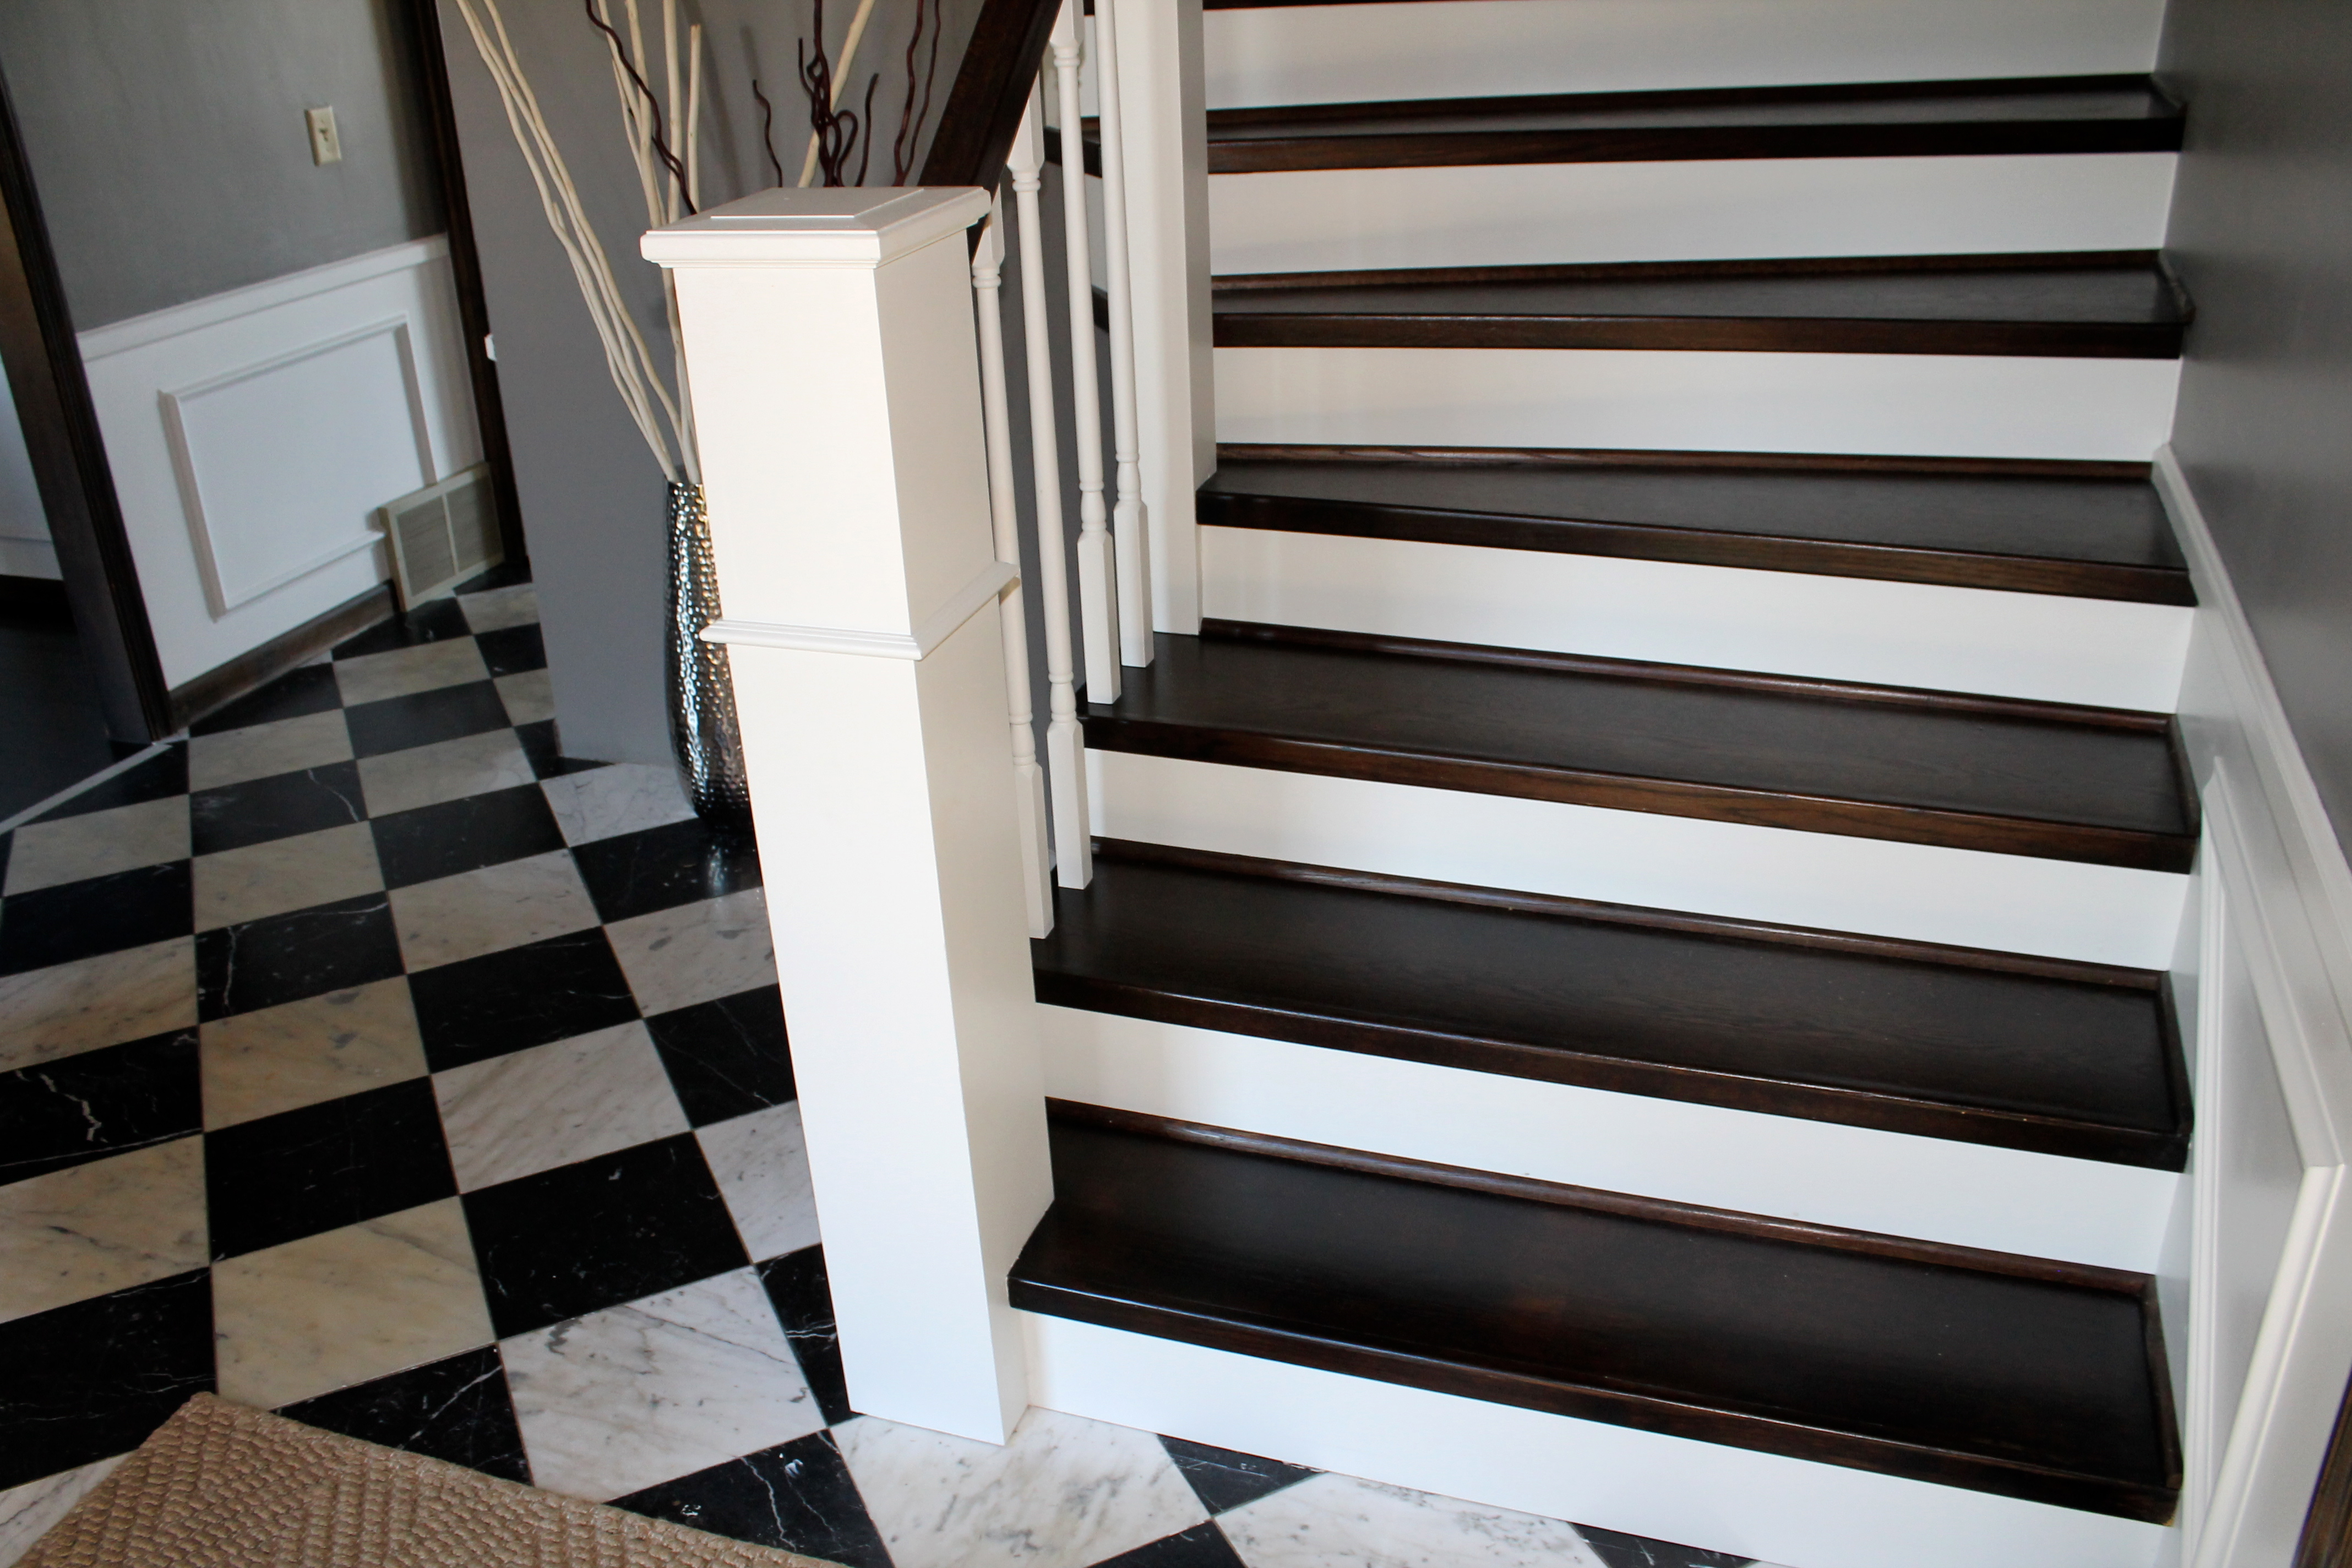 Painted Wood Stairs Remodelaholic Curved Staircase Remodel With New Handrail